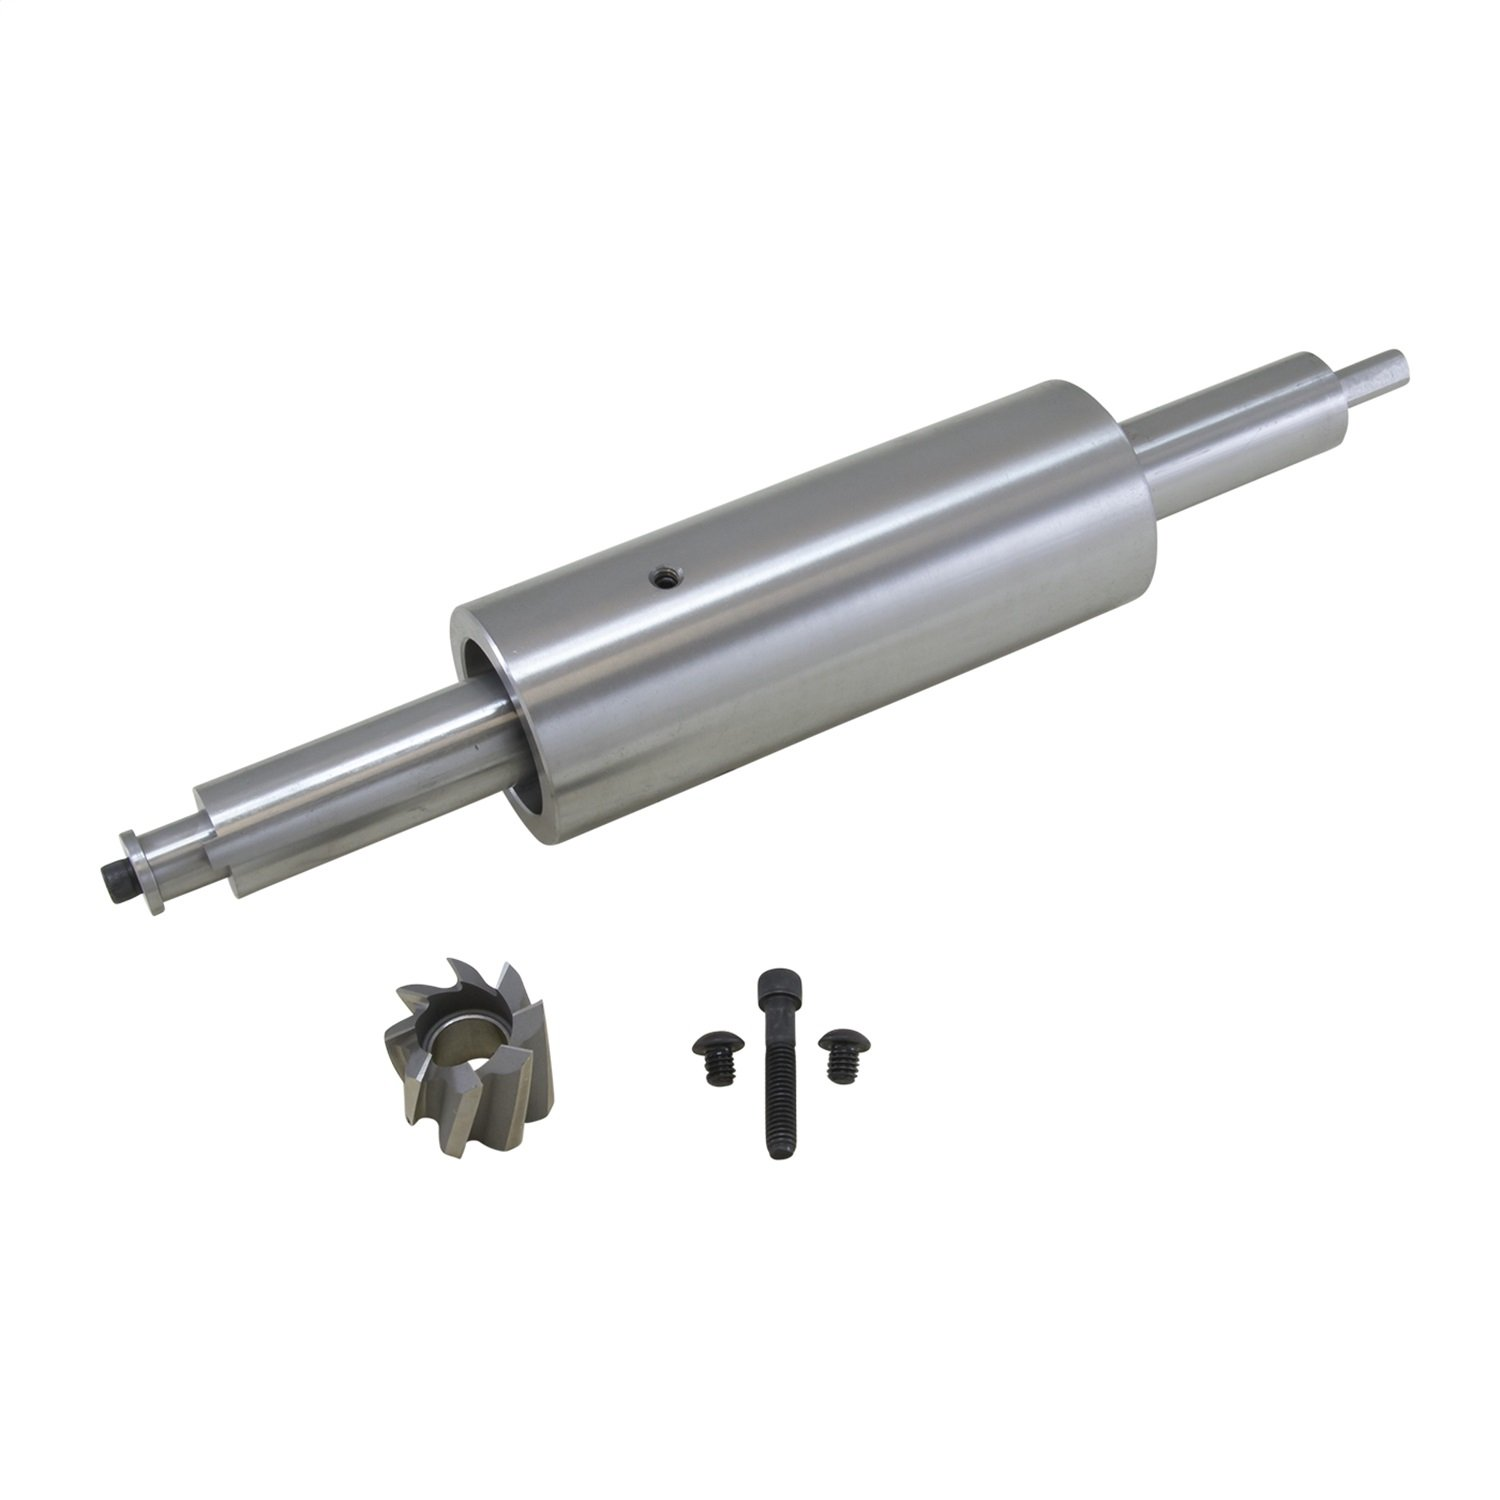 Yukon (YT H31) Spindle Boring Tool for 35-Spline Dana 60 Differential